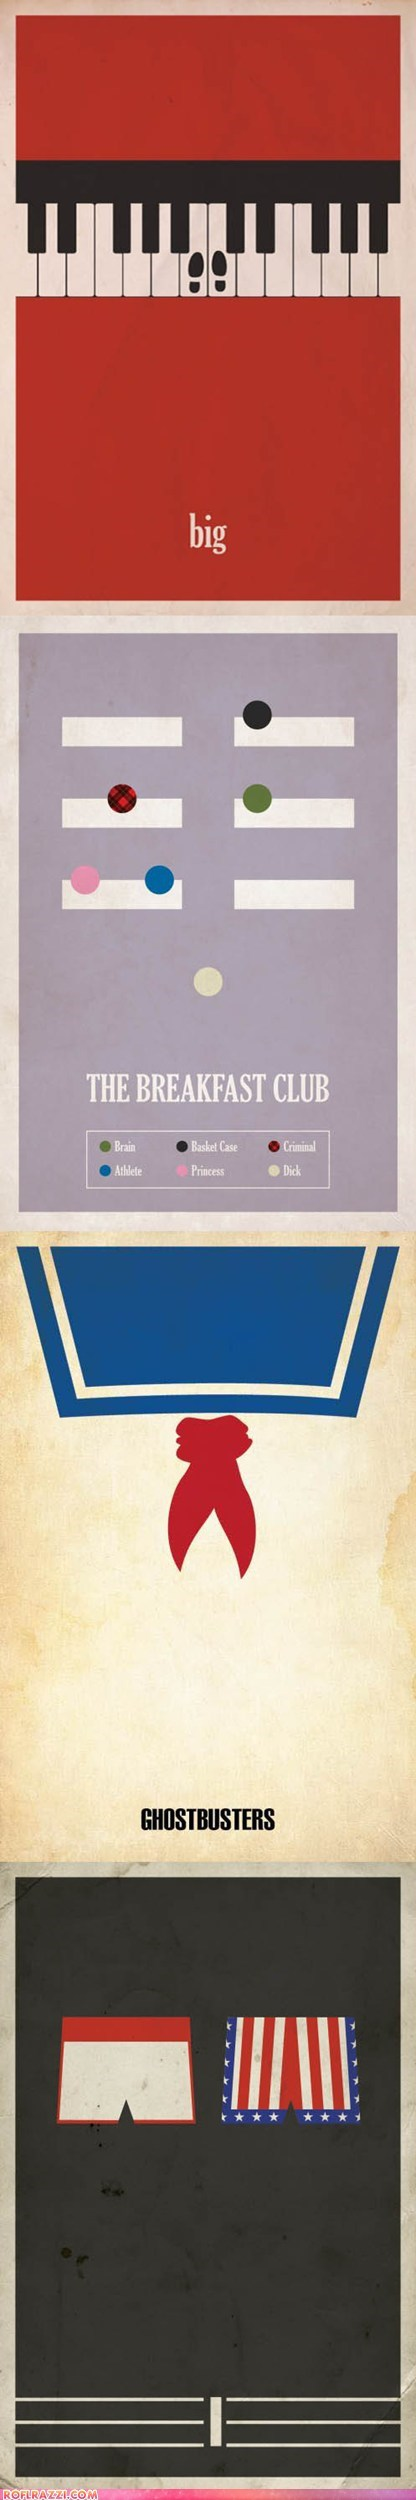 70s,80s,art,big,Ghostbusters,Movie,poster,rocky,the breakfast club